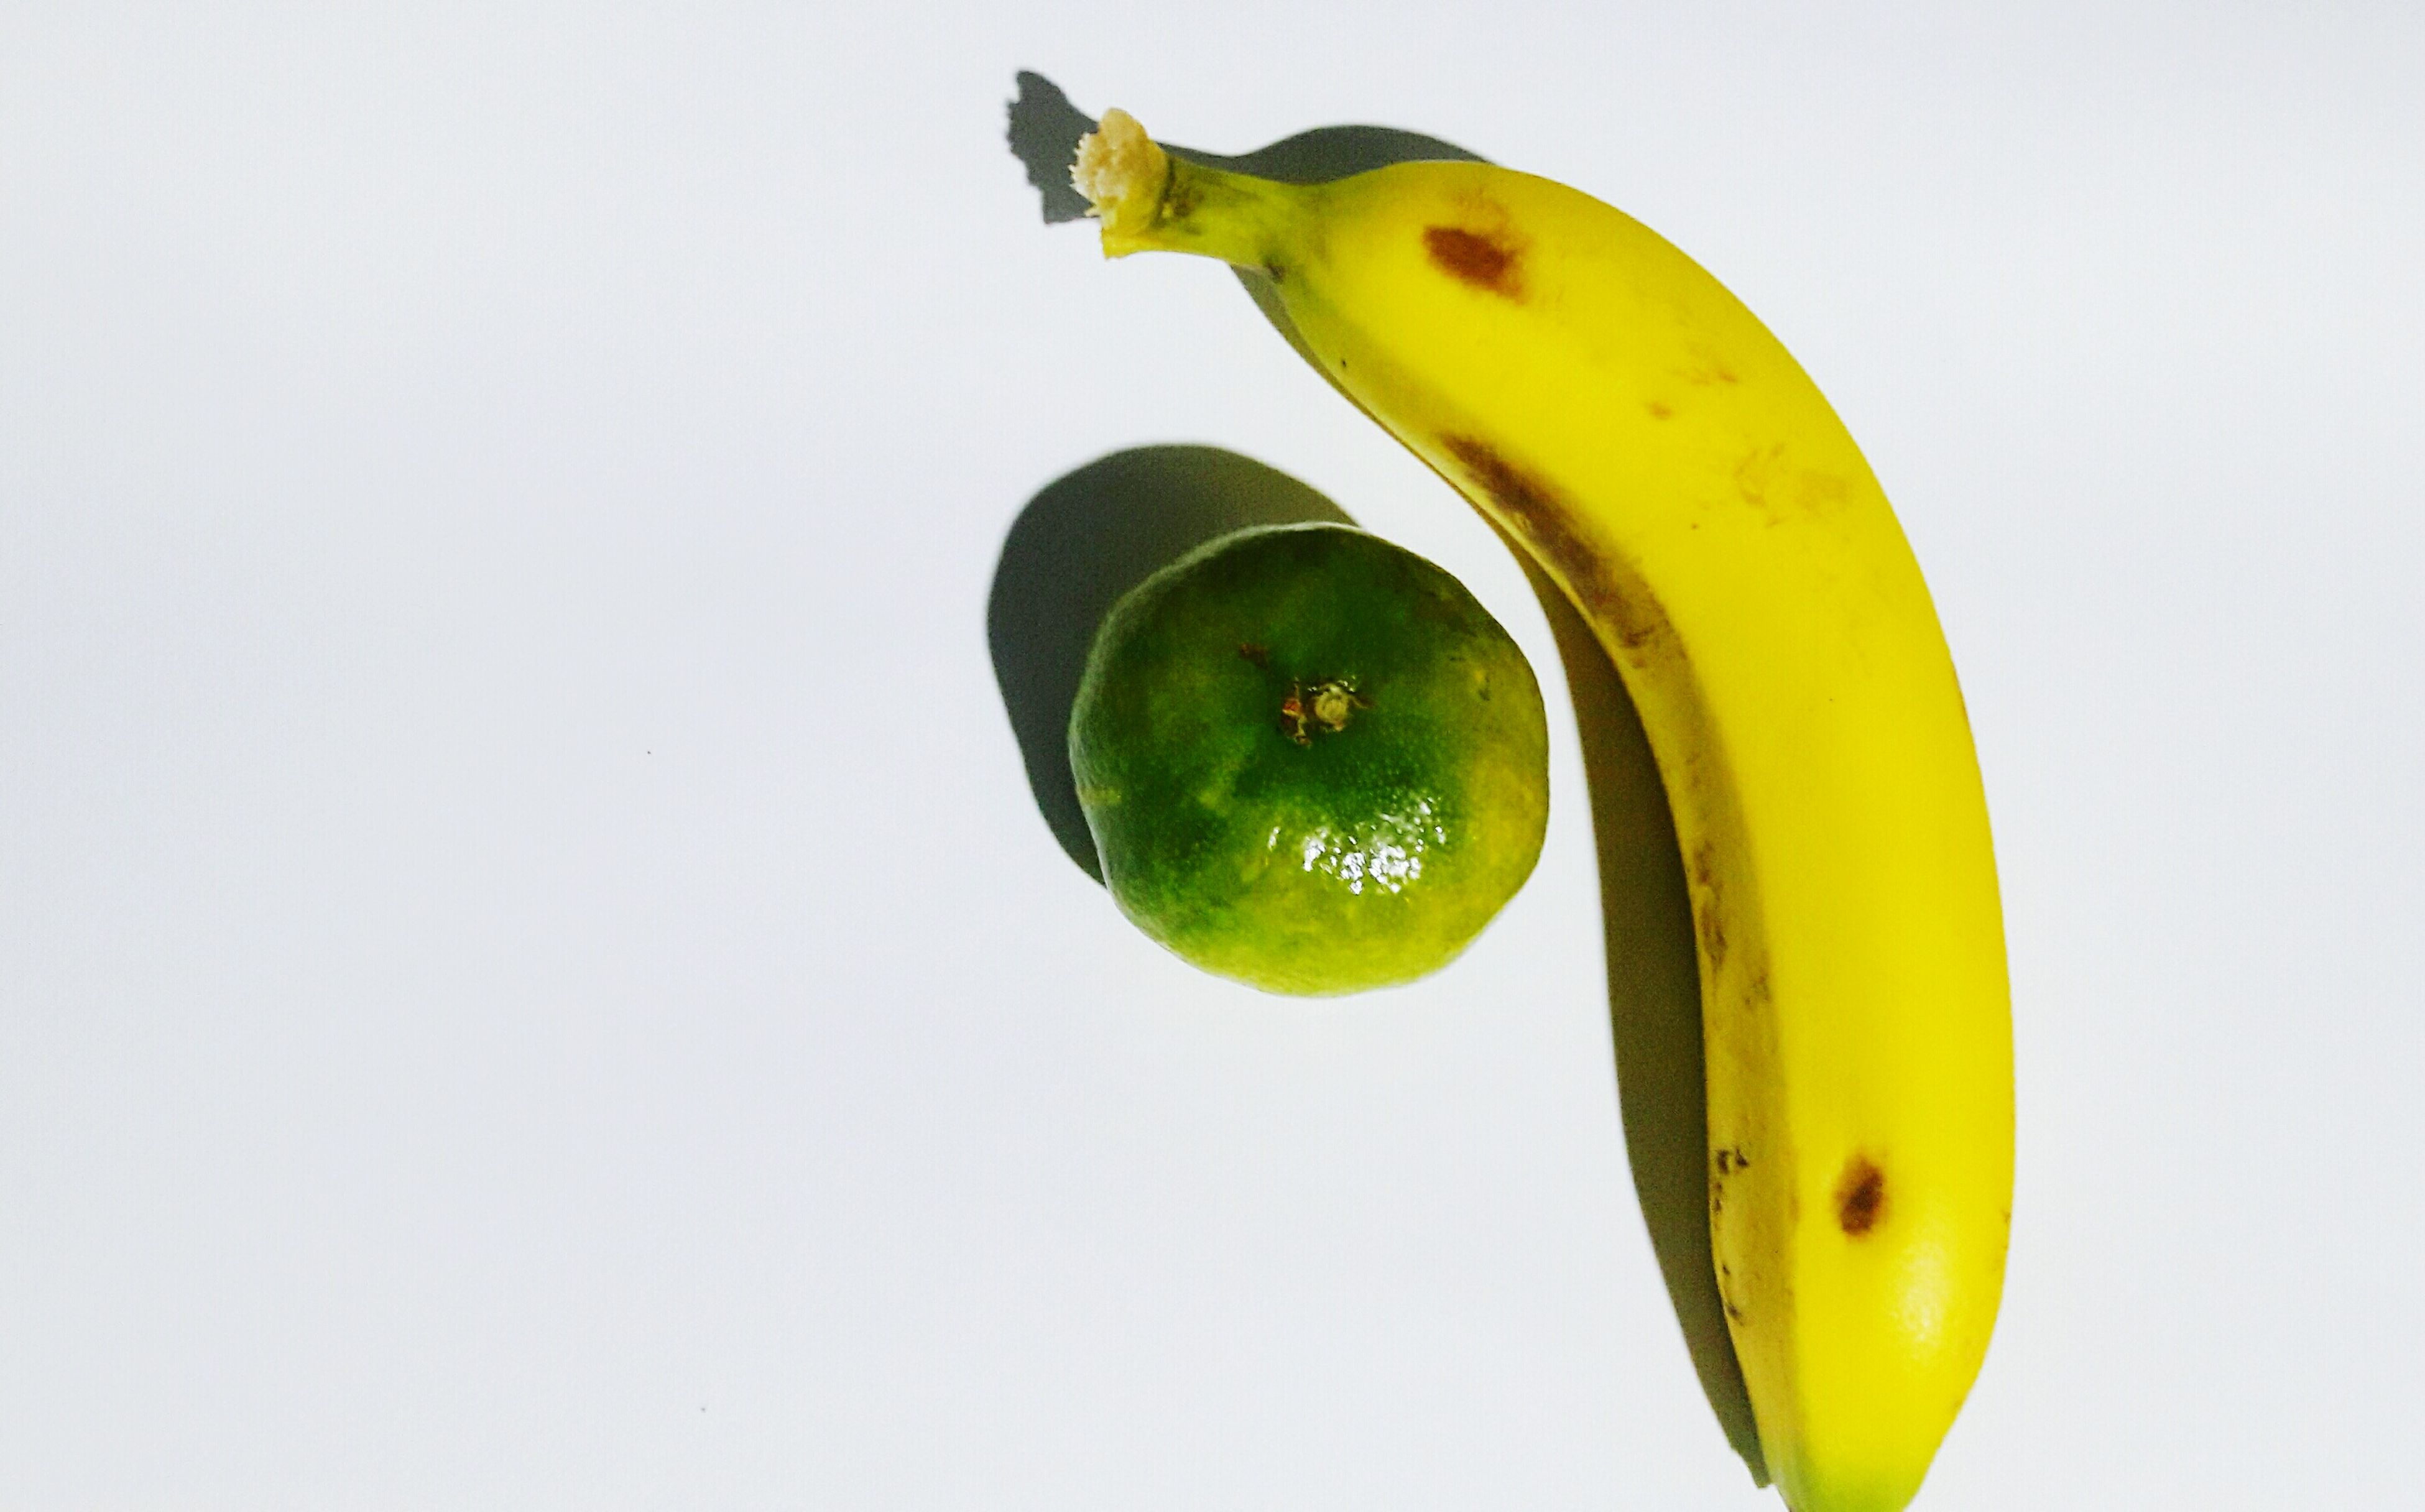 fruit, yellow, banana, green color, food and drink, studio shot, food, white background, no people, healthy eating, low angle view, freshness, close-up, nature, day, outdoors